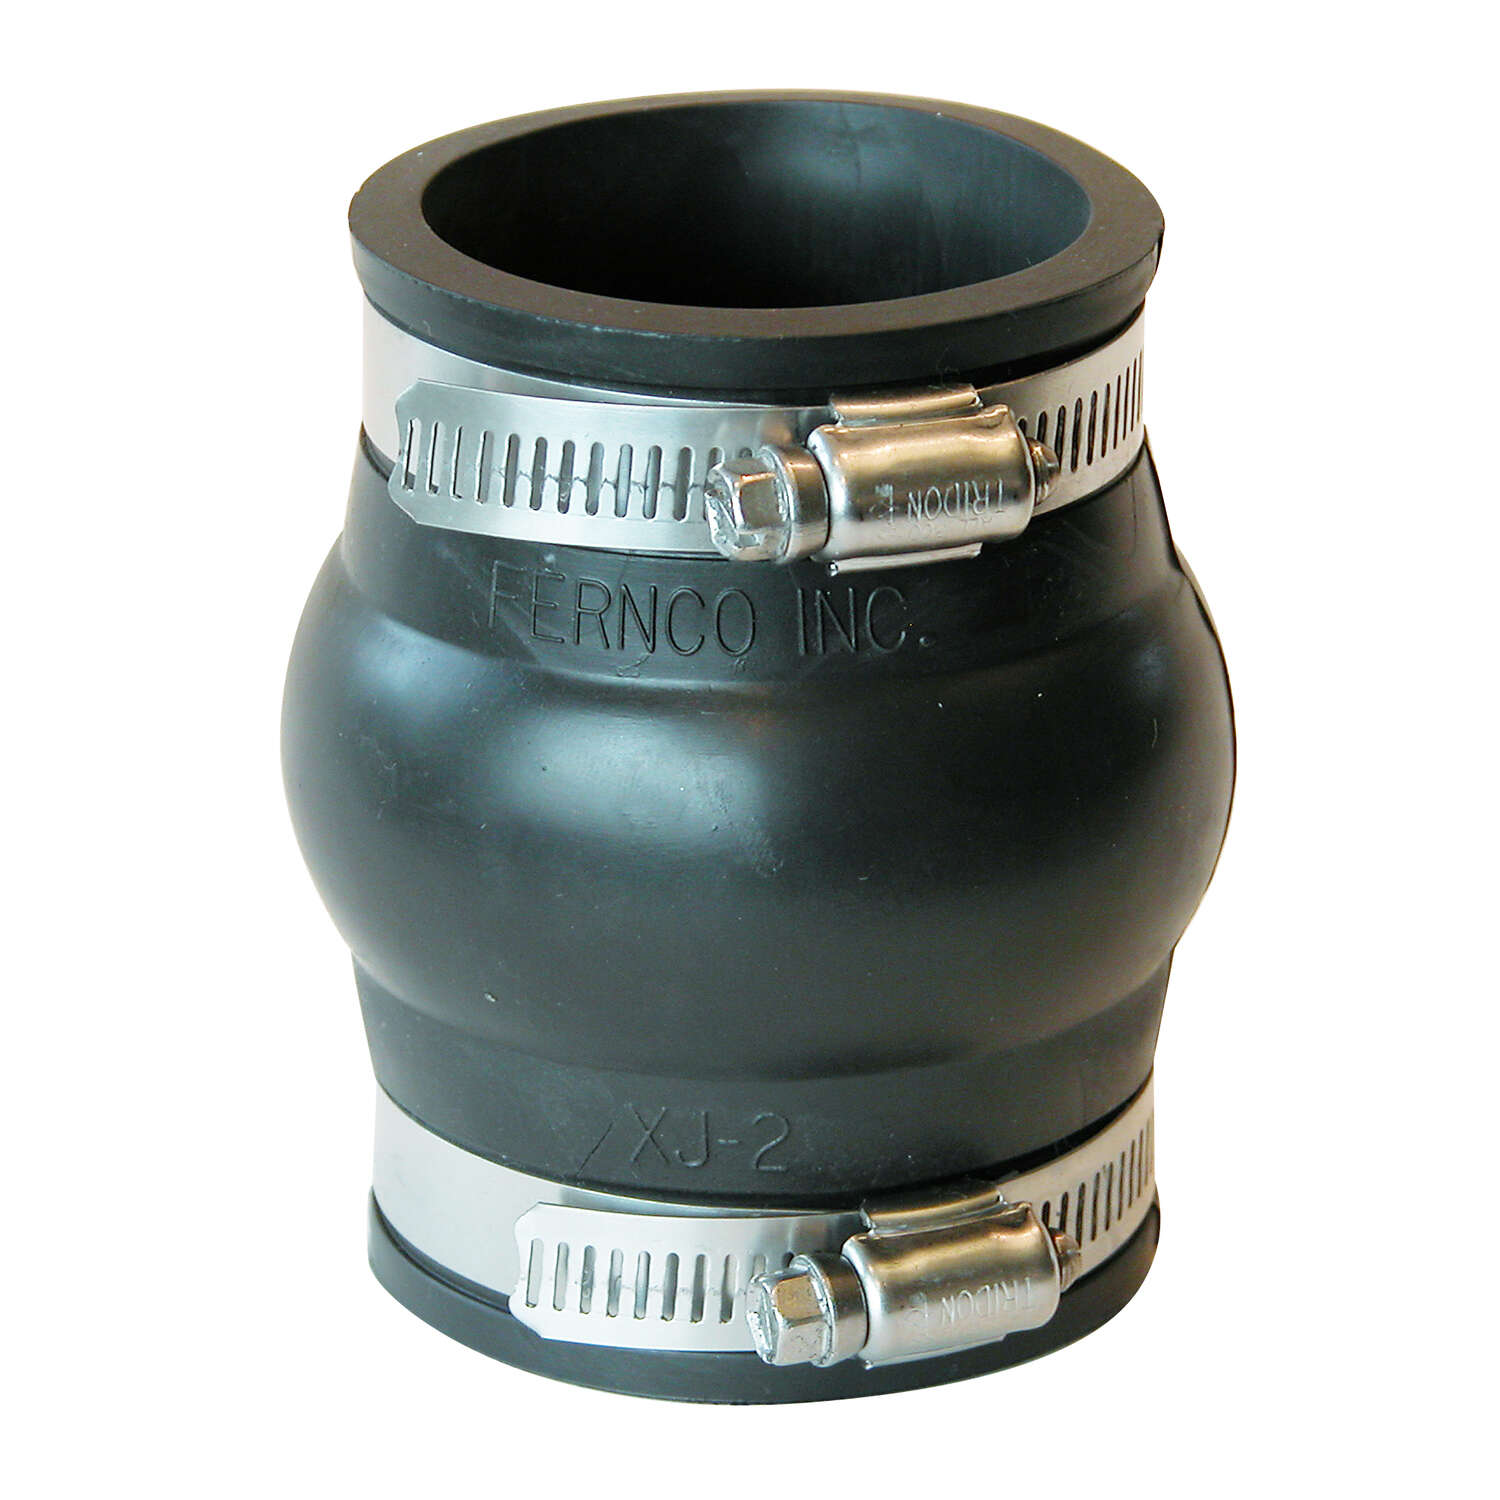 Fernco  Schedule 40  2 in. Hub   x 2 in. Dia. Hub  PVC  Expansion Coupling